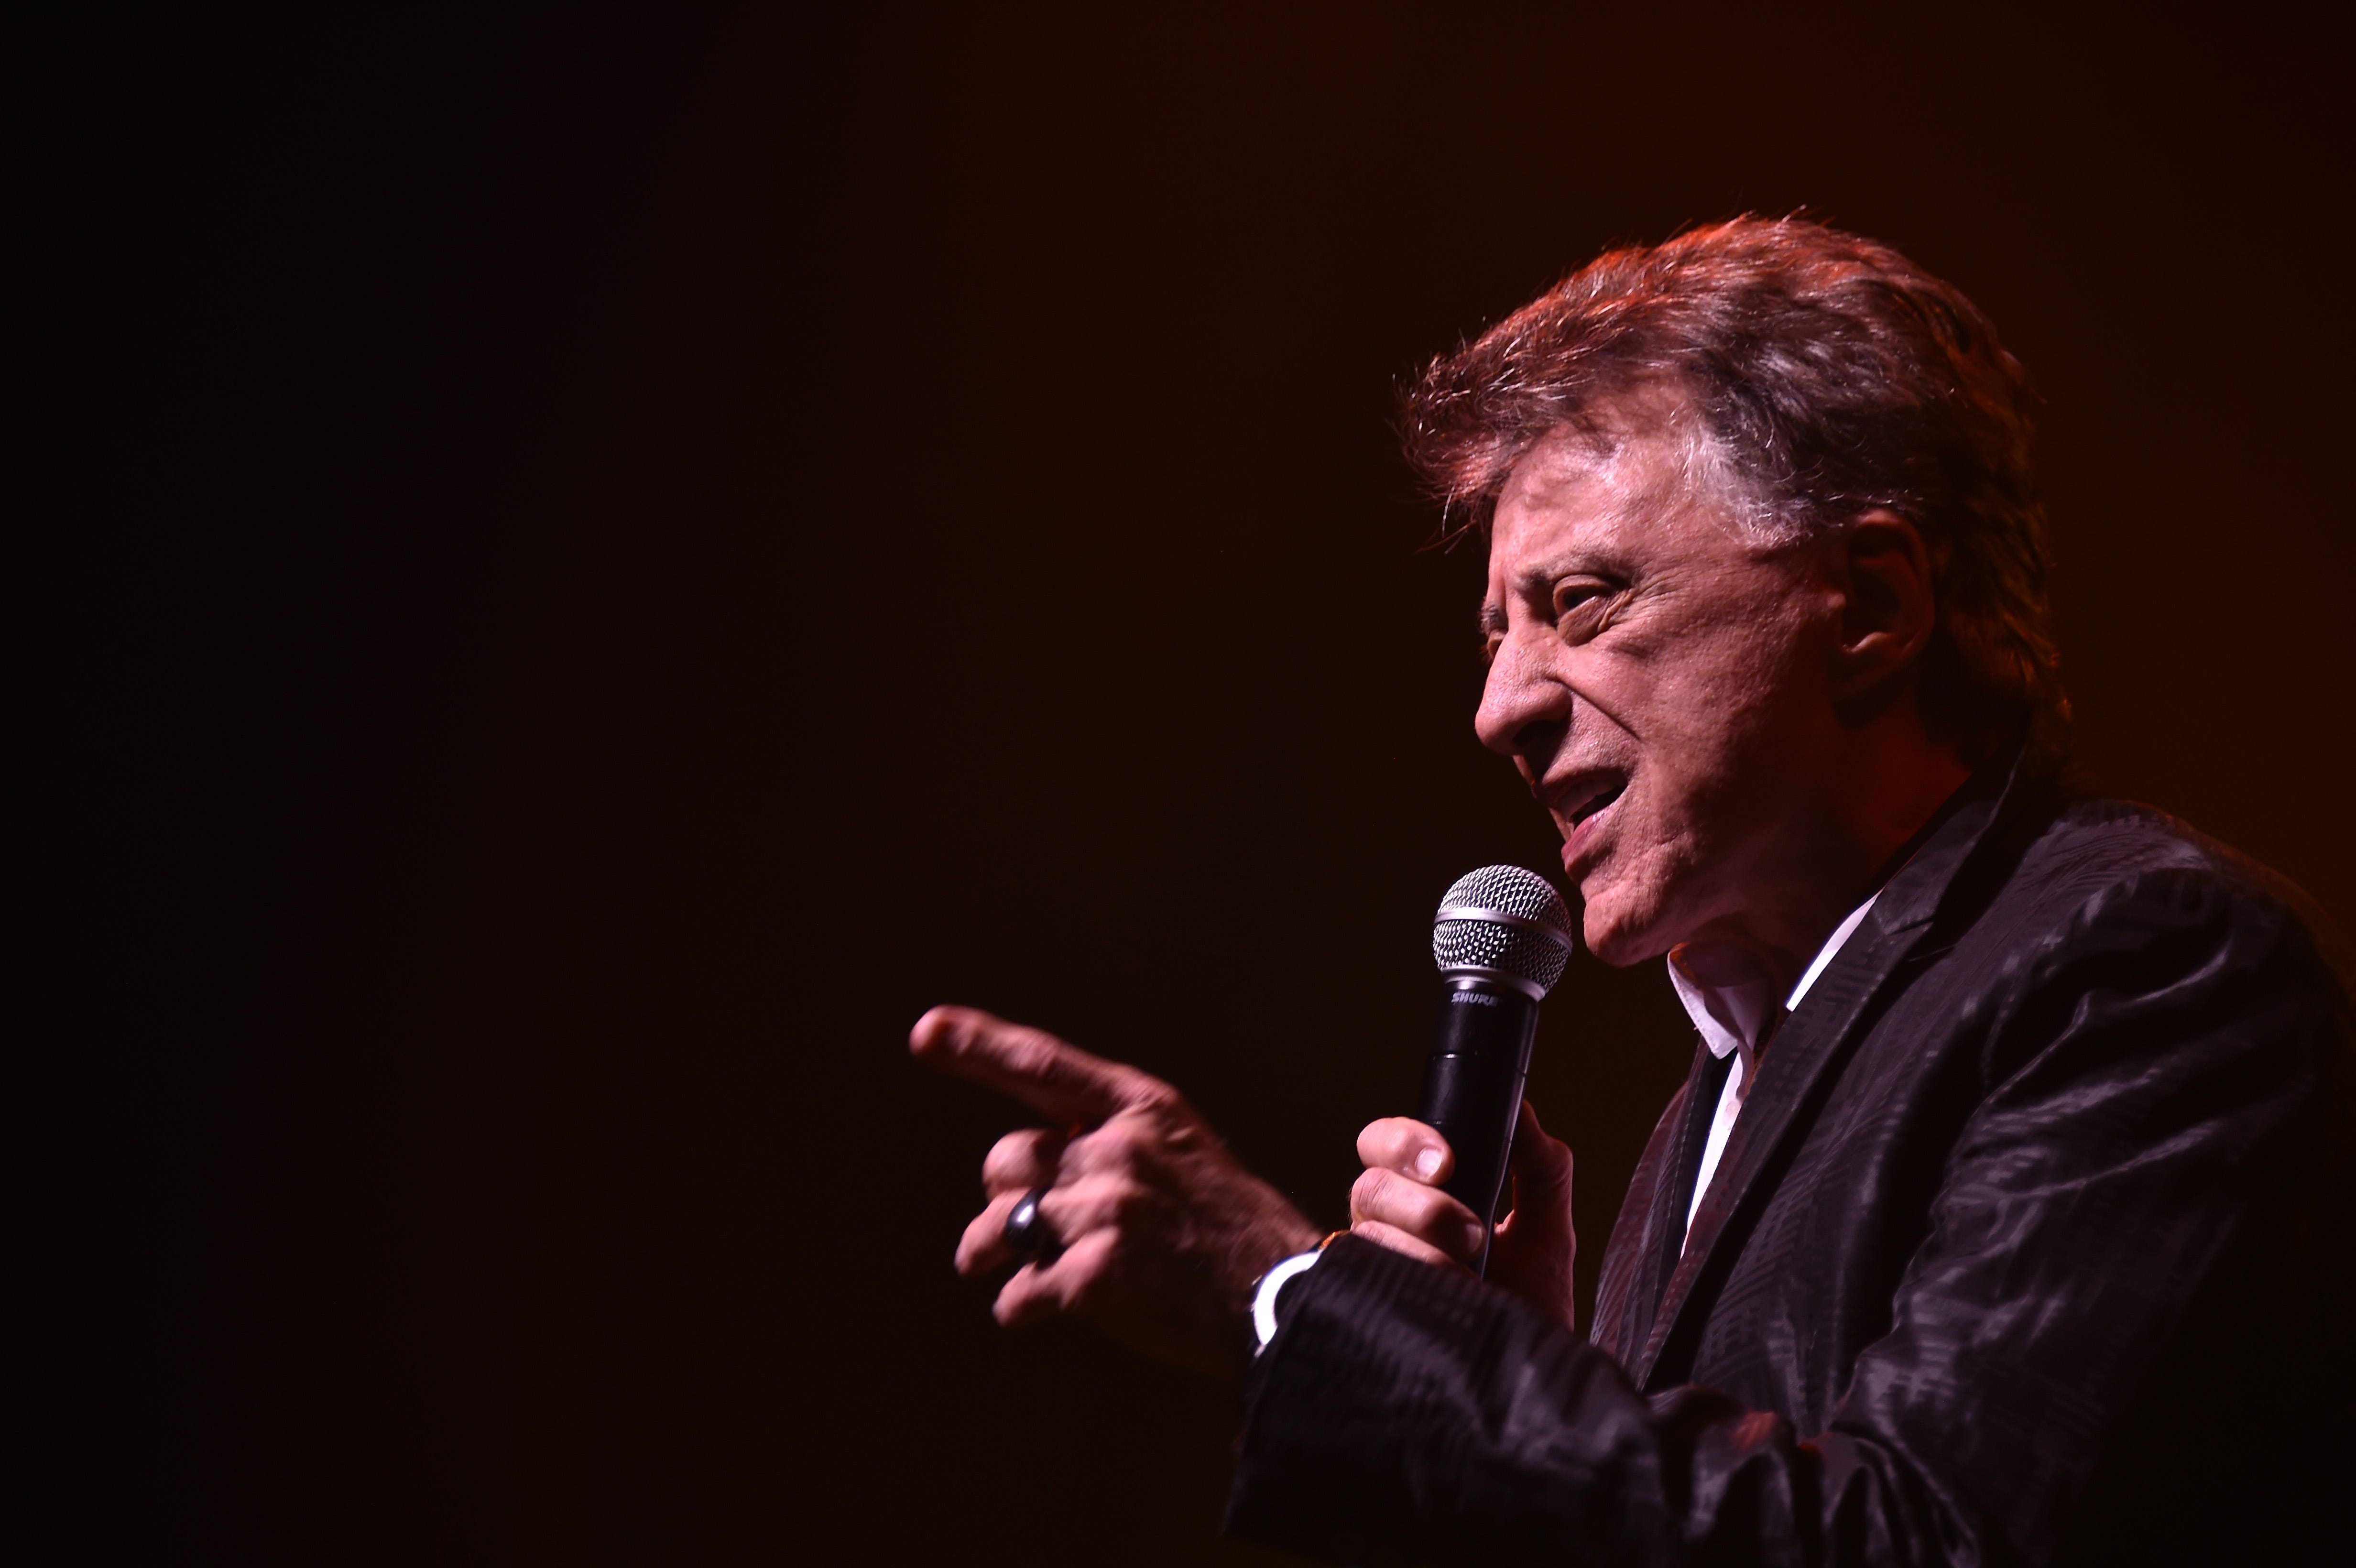 Frankie Valli & The Four Seasons to rock the Civic Center s stage